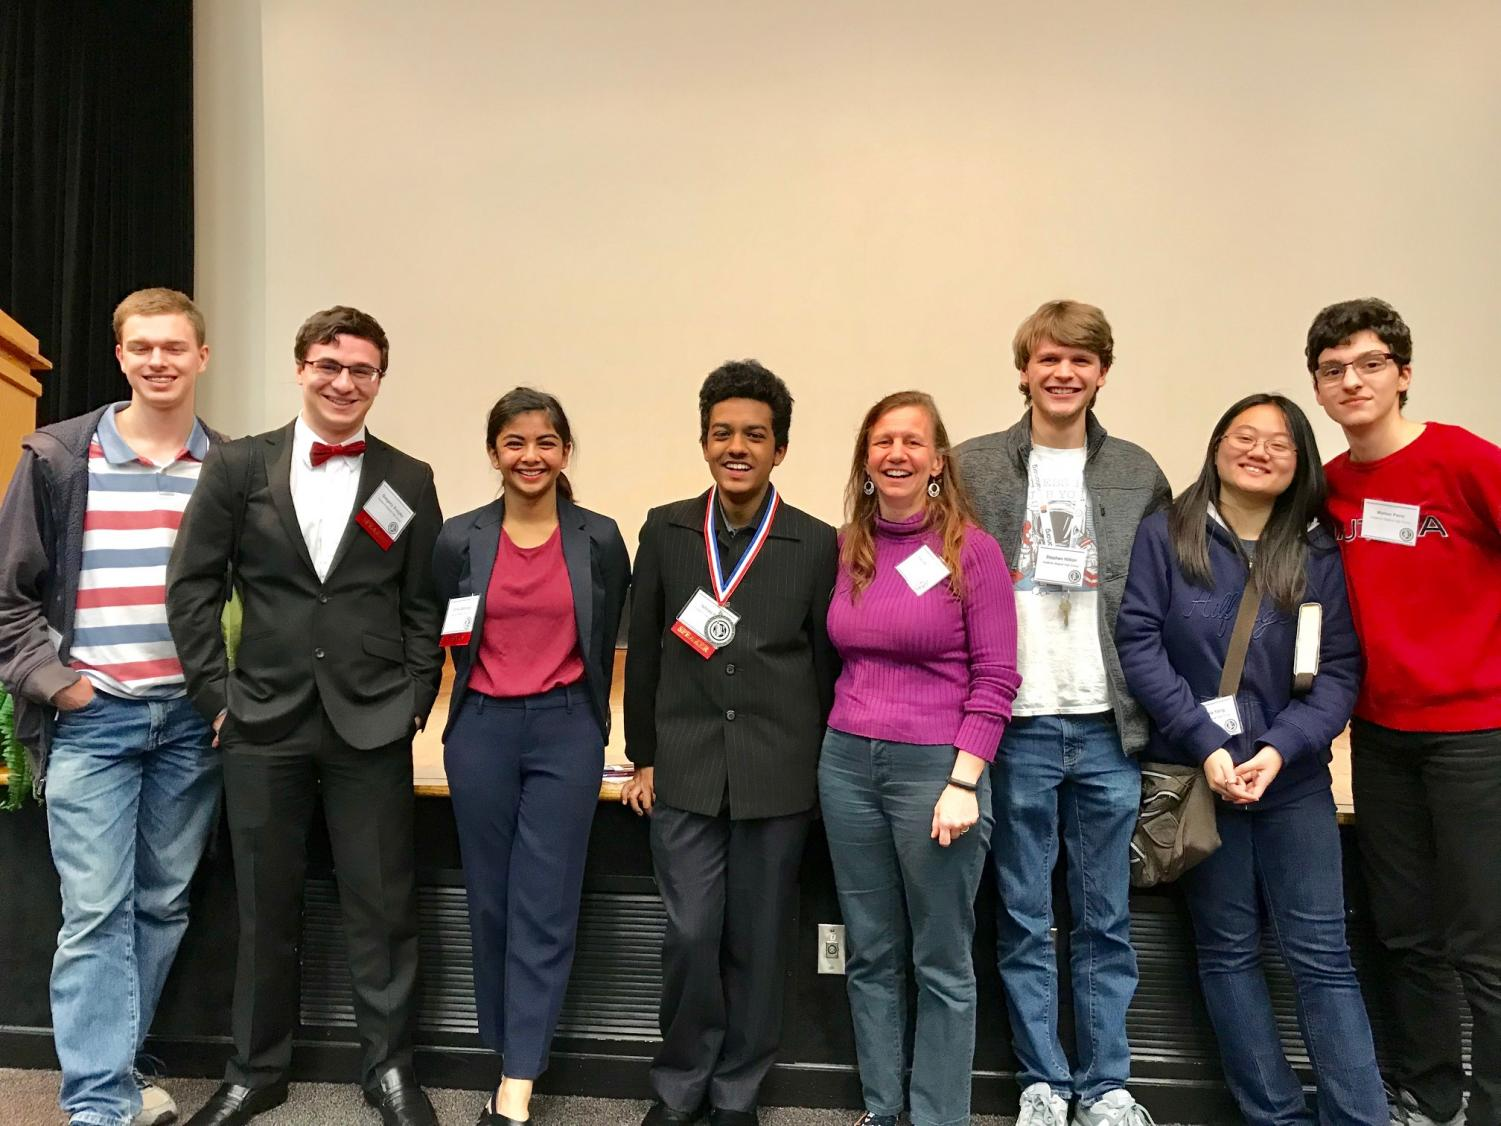 AMHS+Science+Club+Students+excited+about+their+award+winning+research.+Pictured+left+to+right%3A+John+Paradise%2C+Greg+Znokyo%2C+Disha+Qanungo%2C+Ishraq+Haque%2C+Ms.+Katy+Metzner-Roop%2C+Stephen+Hilton%2C+Angela+Yang%2C+and+Matteo+Pavic.+